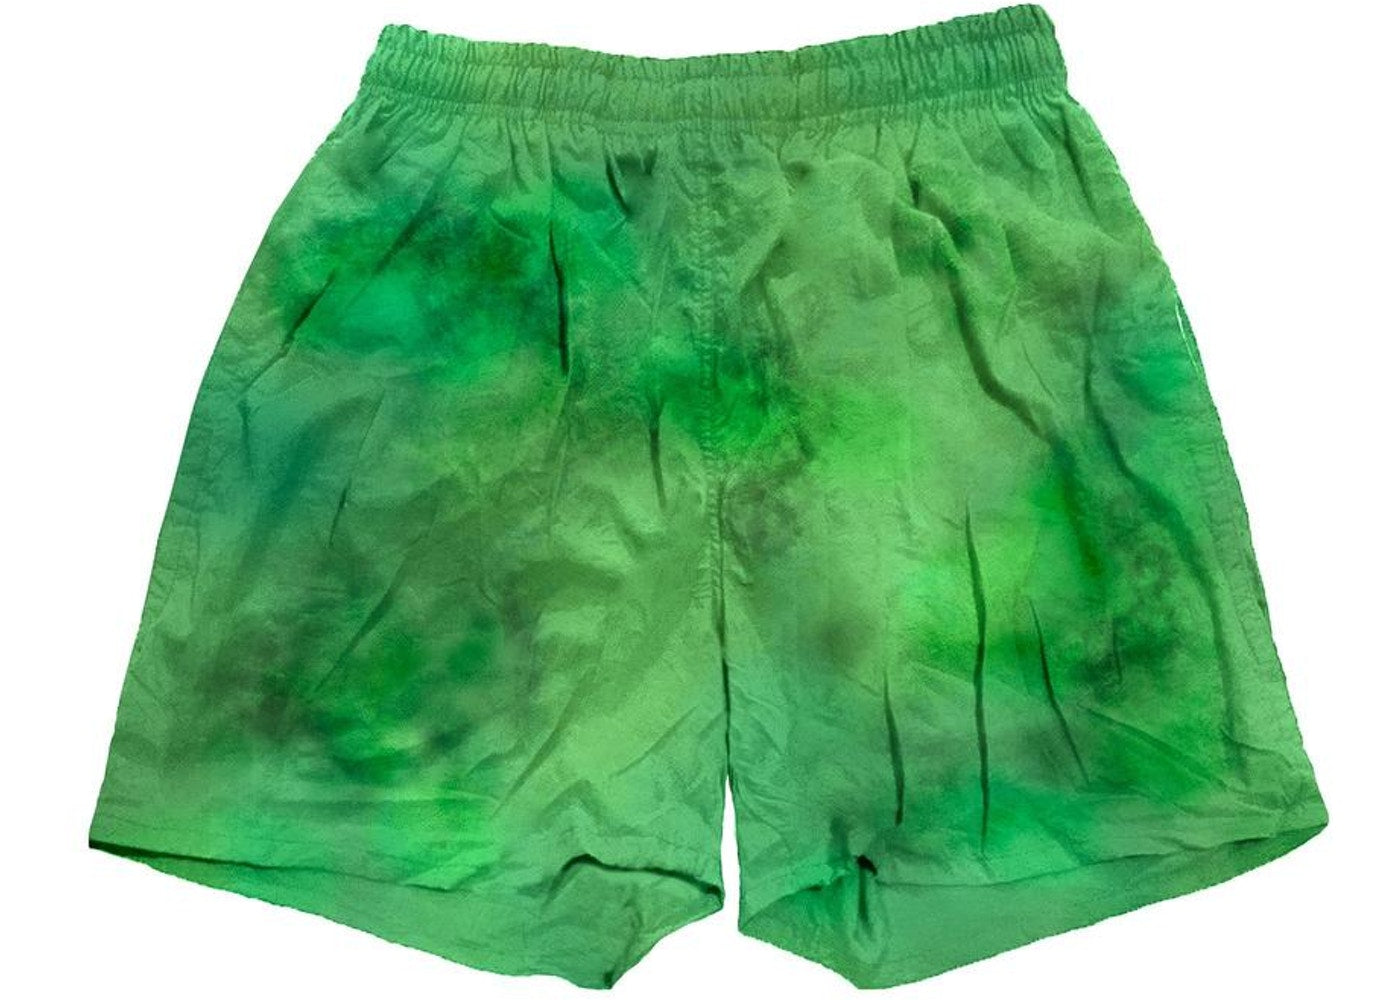 Travis Scott Shamrock Shake Shorts Green